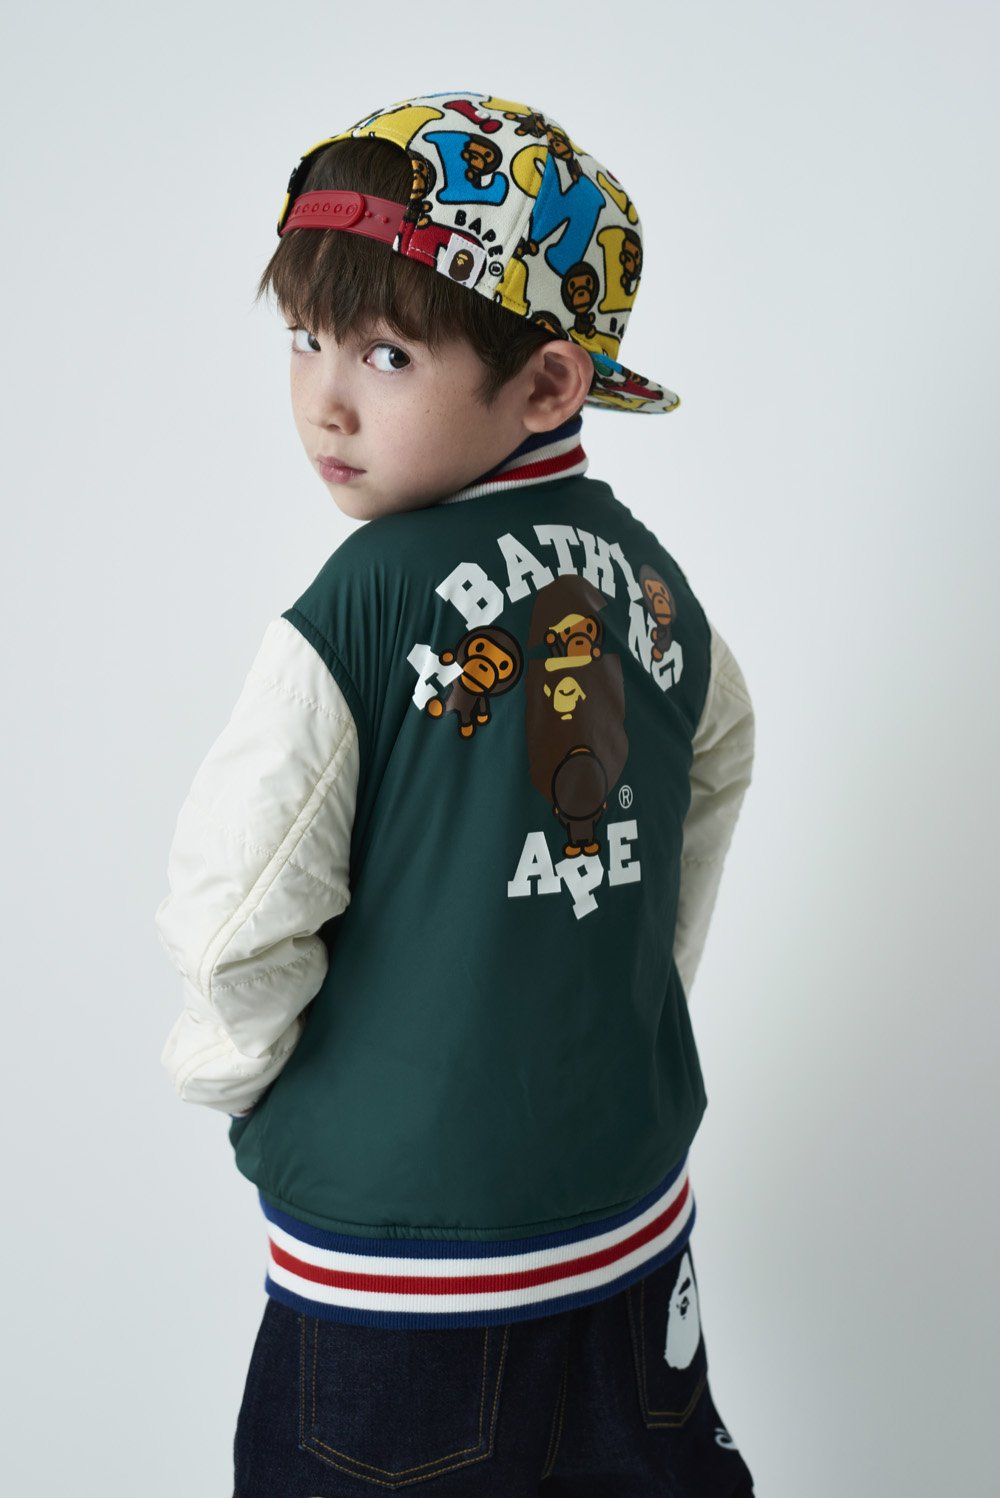 2020 AW KIDS'/JUNIORS' LOOKBOOK 14